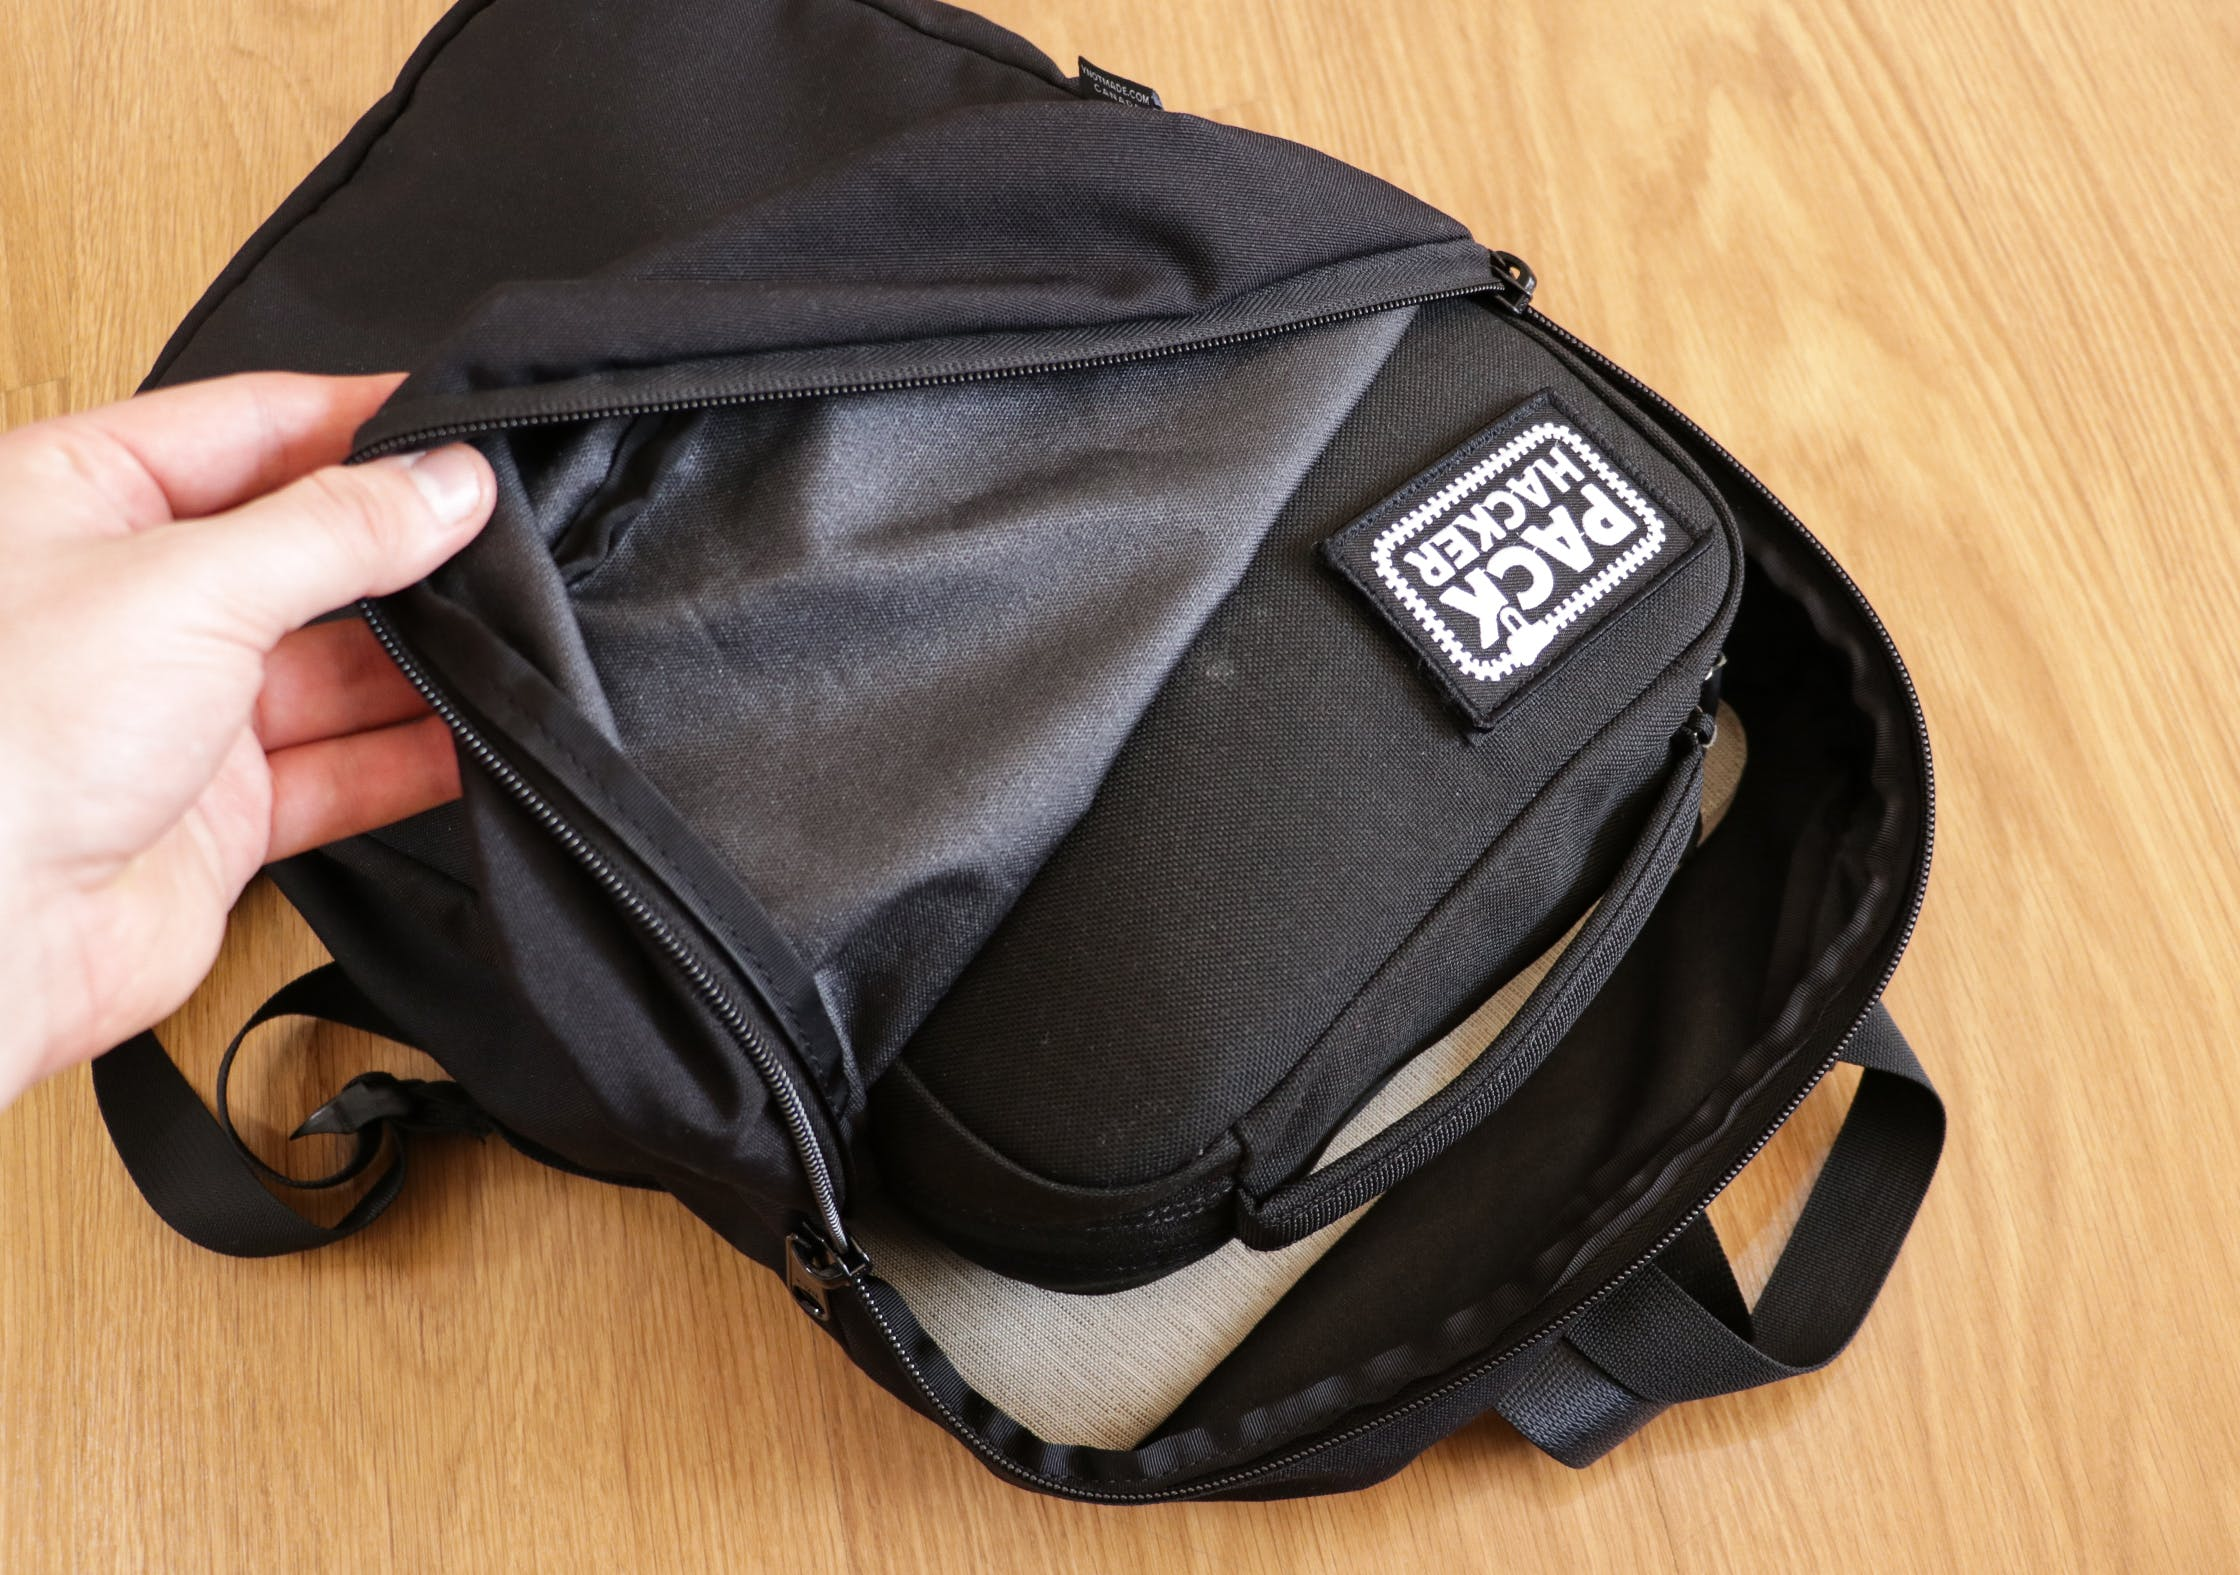 YNOT Deploy With A Padded GORUCK GR2 Field Pocket Inside